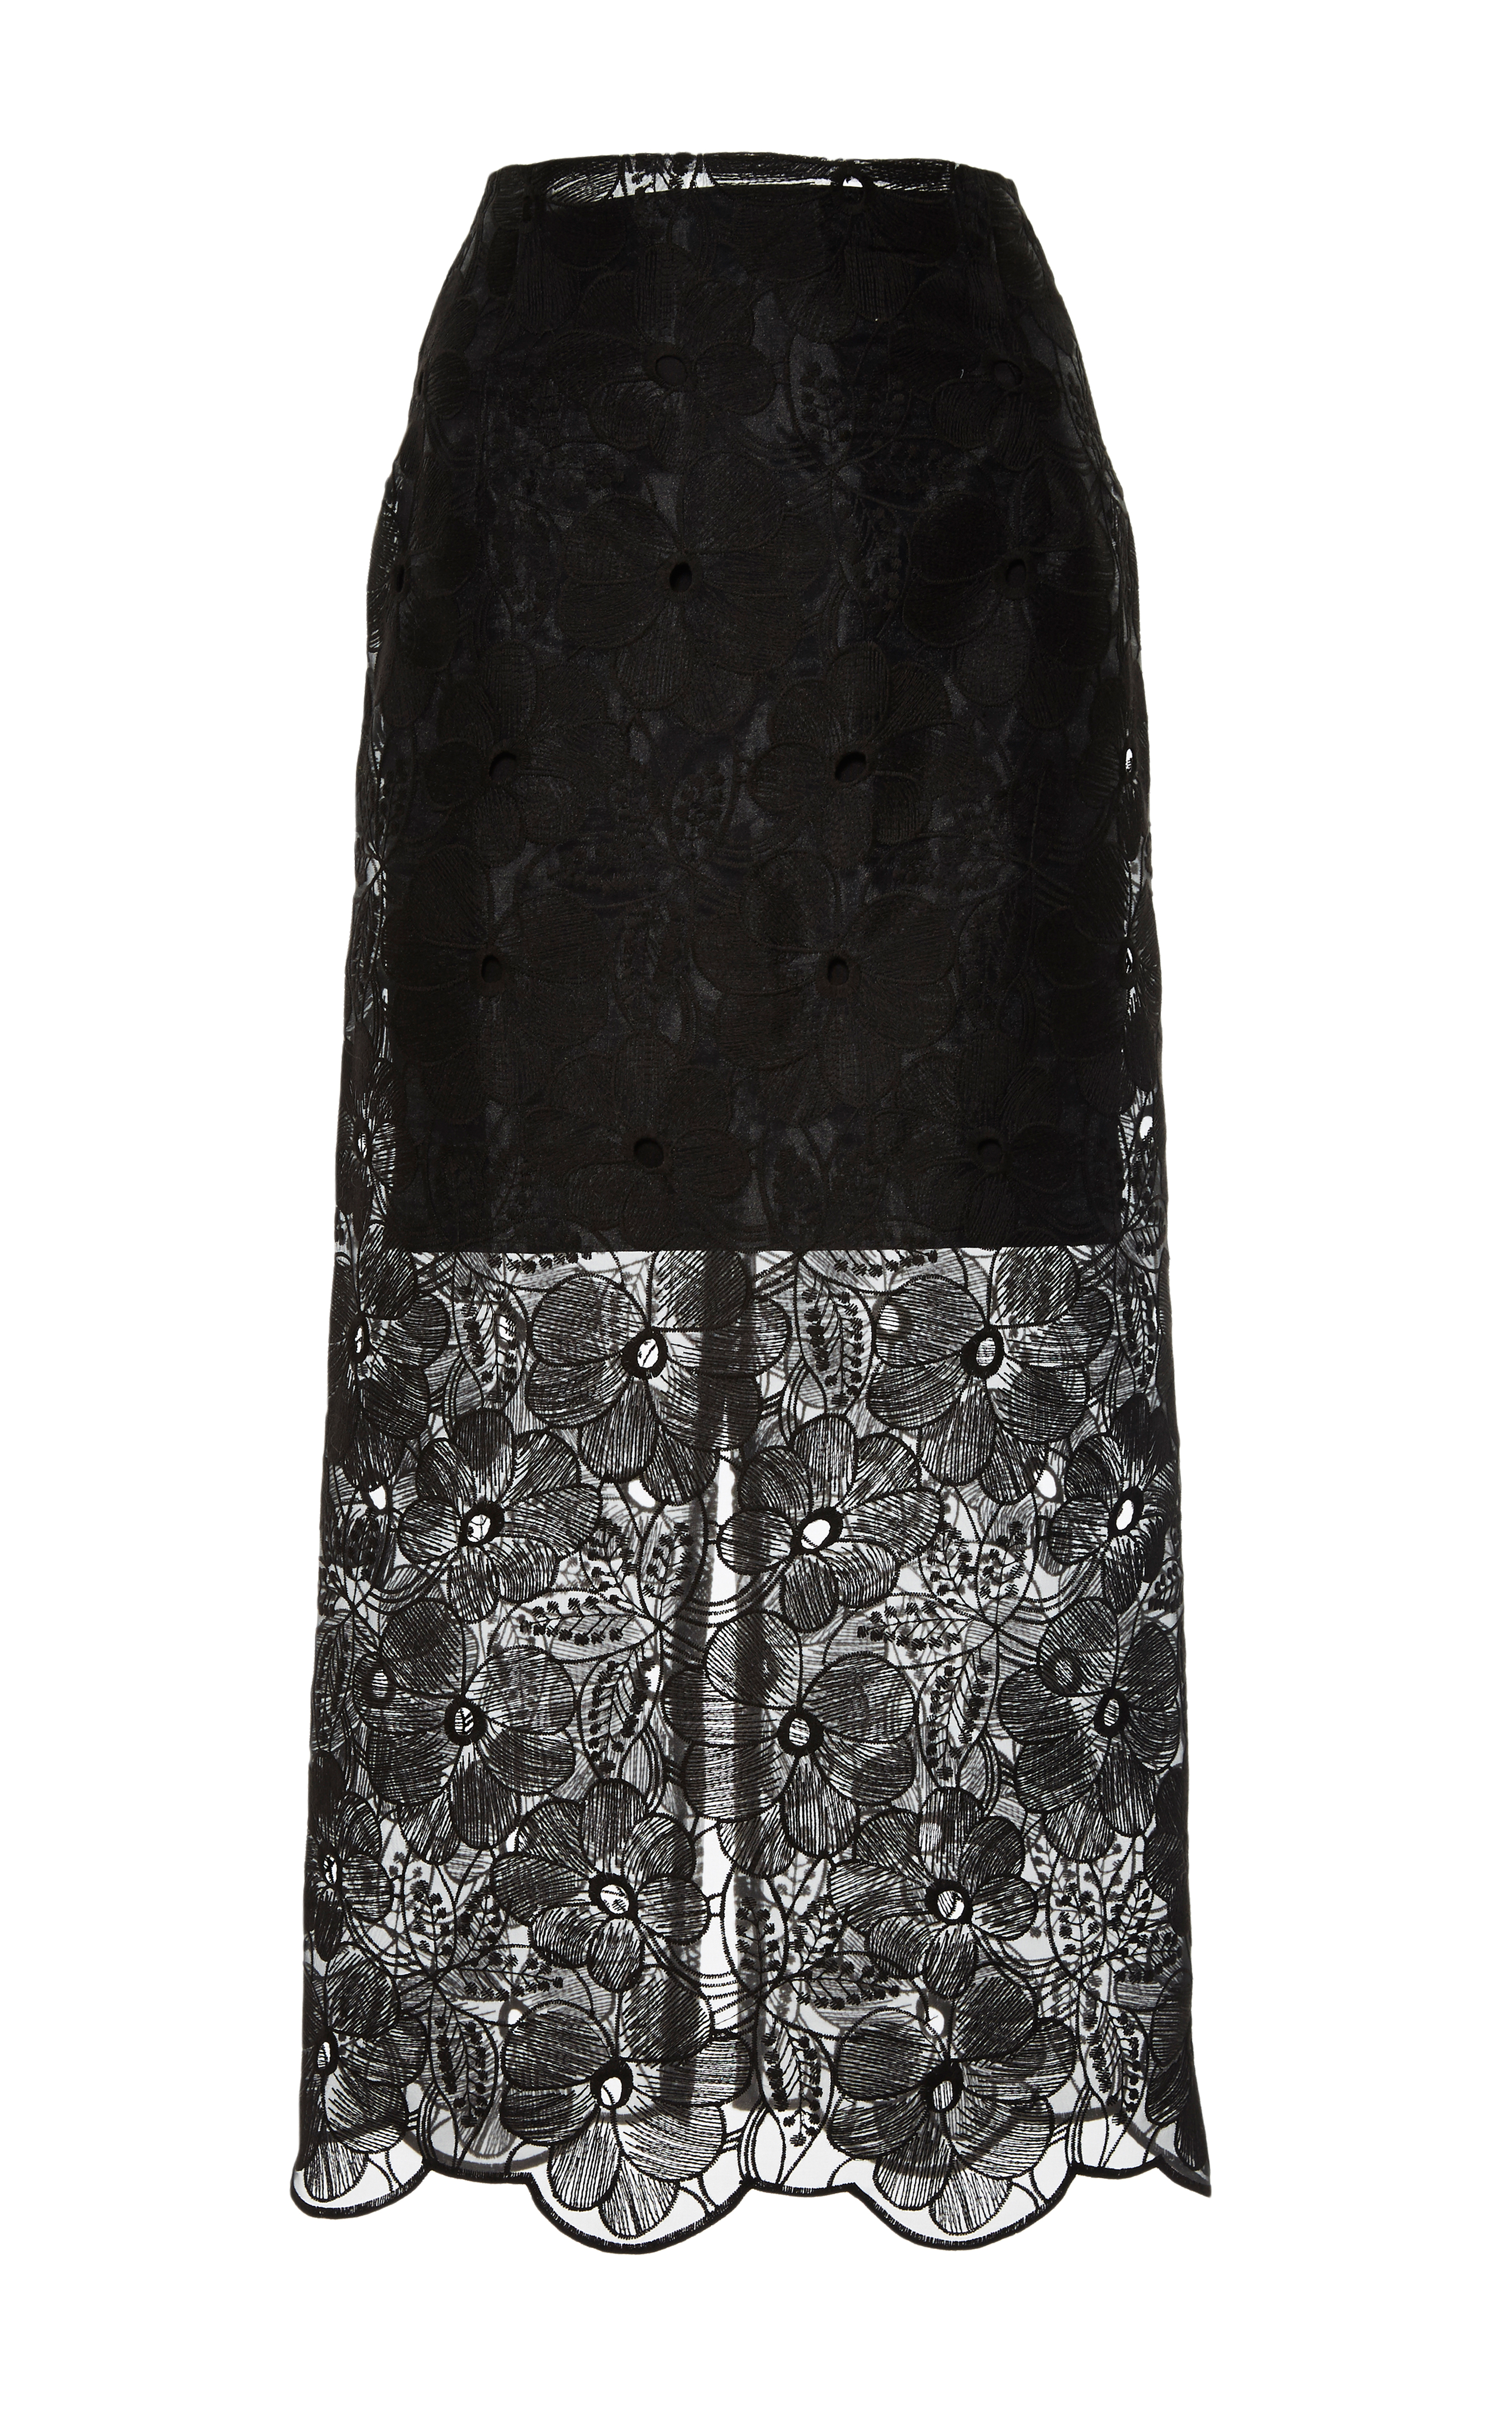 Floral-Embroidered Skirt in Black by Karla Špetic - Moda Operandi